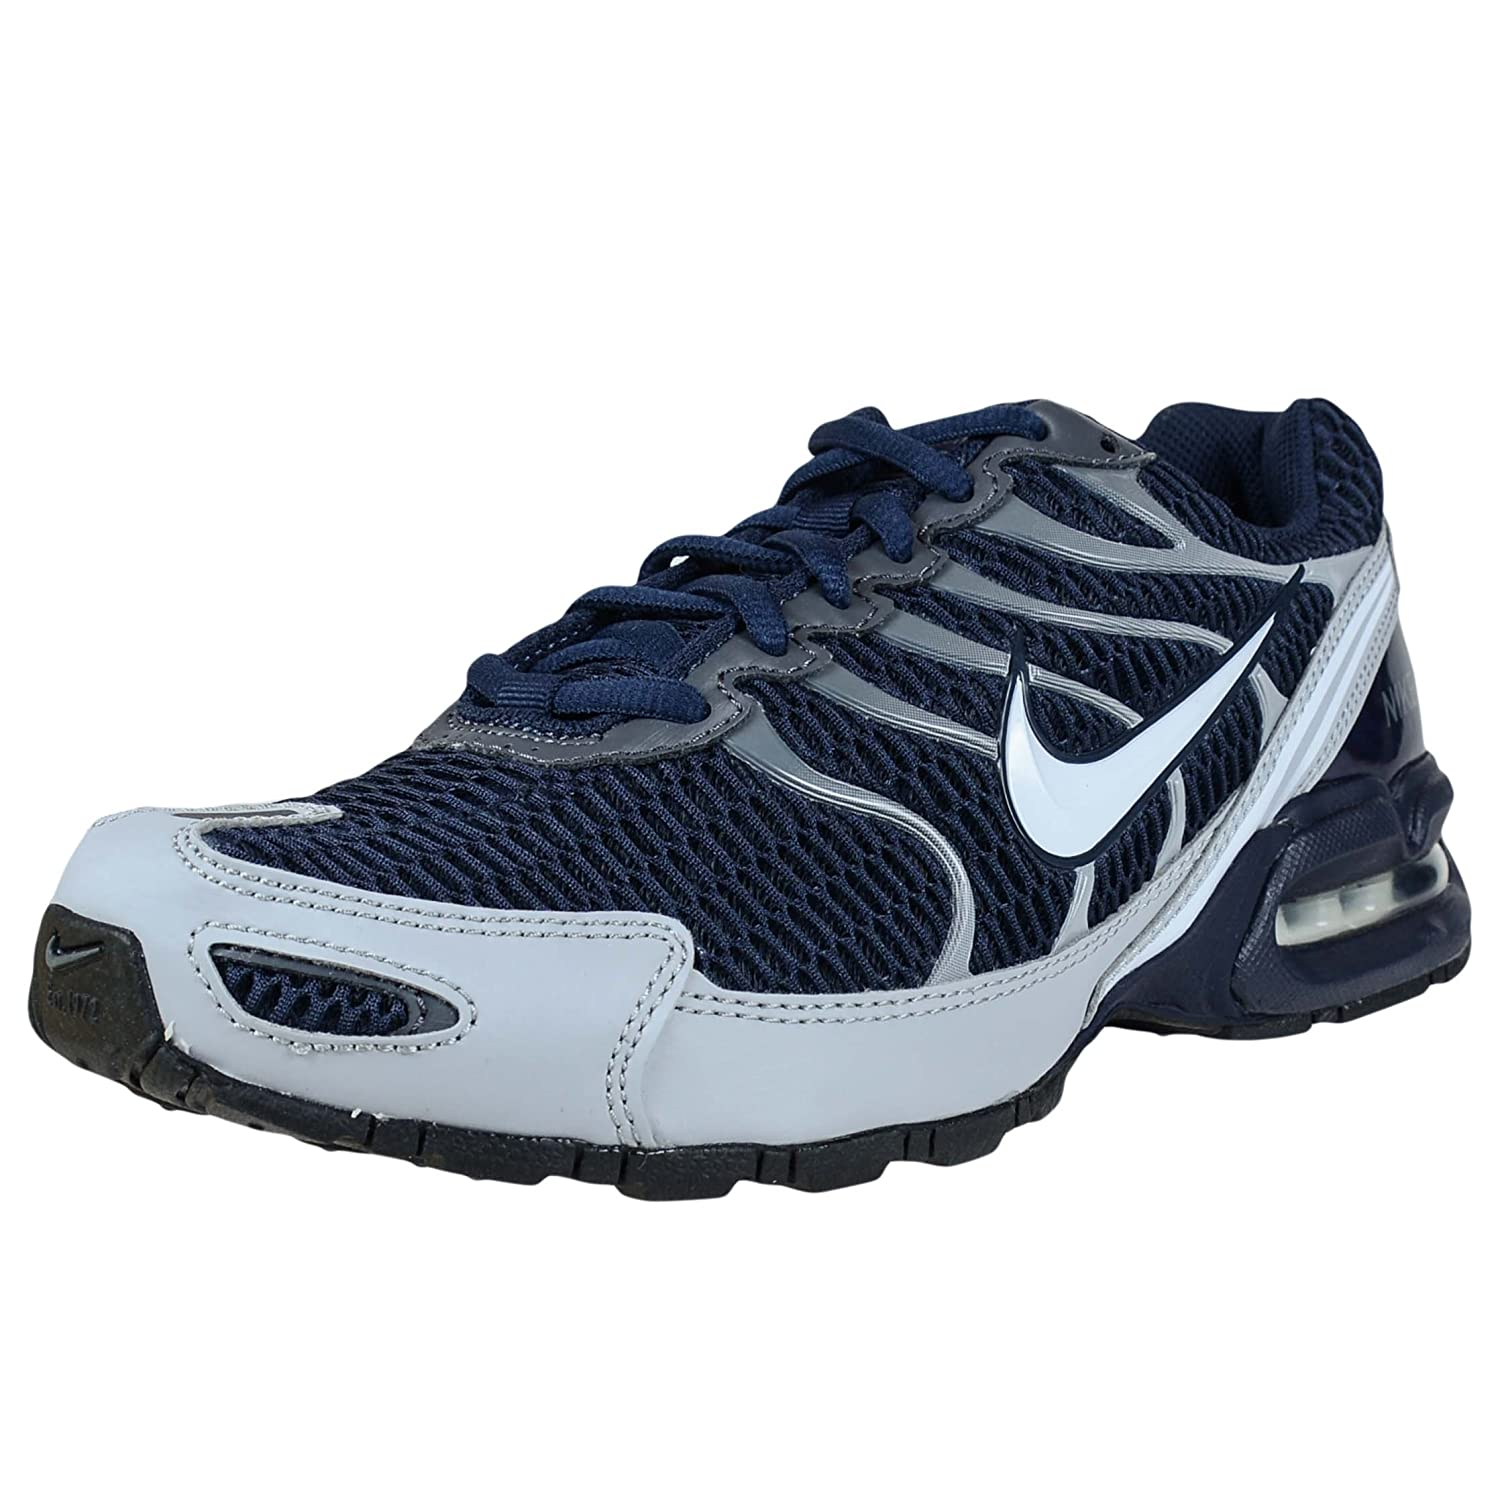 pretty nice 8a234 085a9 Amazon.com  Nike Mens Air Max Torch 4, Obsidian   White - Wolf Grey, 8.5 M  US  Sports   Outdoors